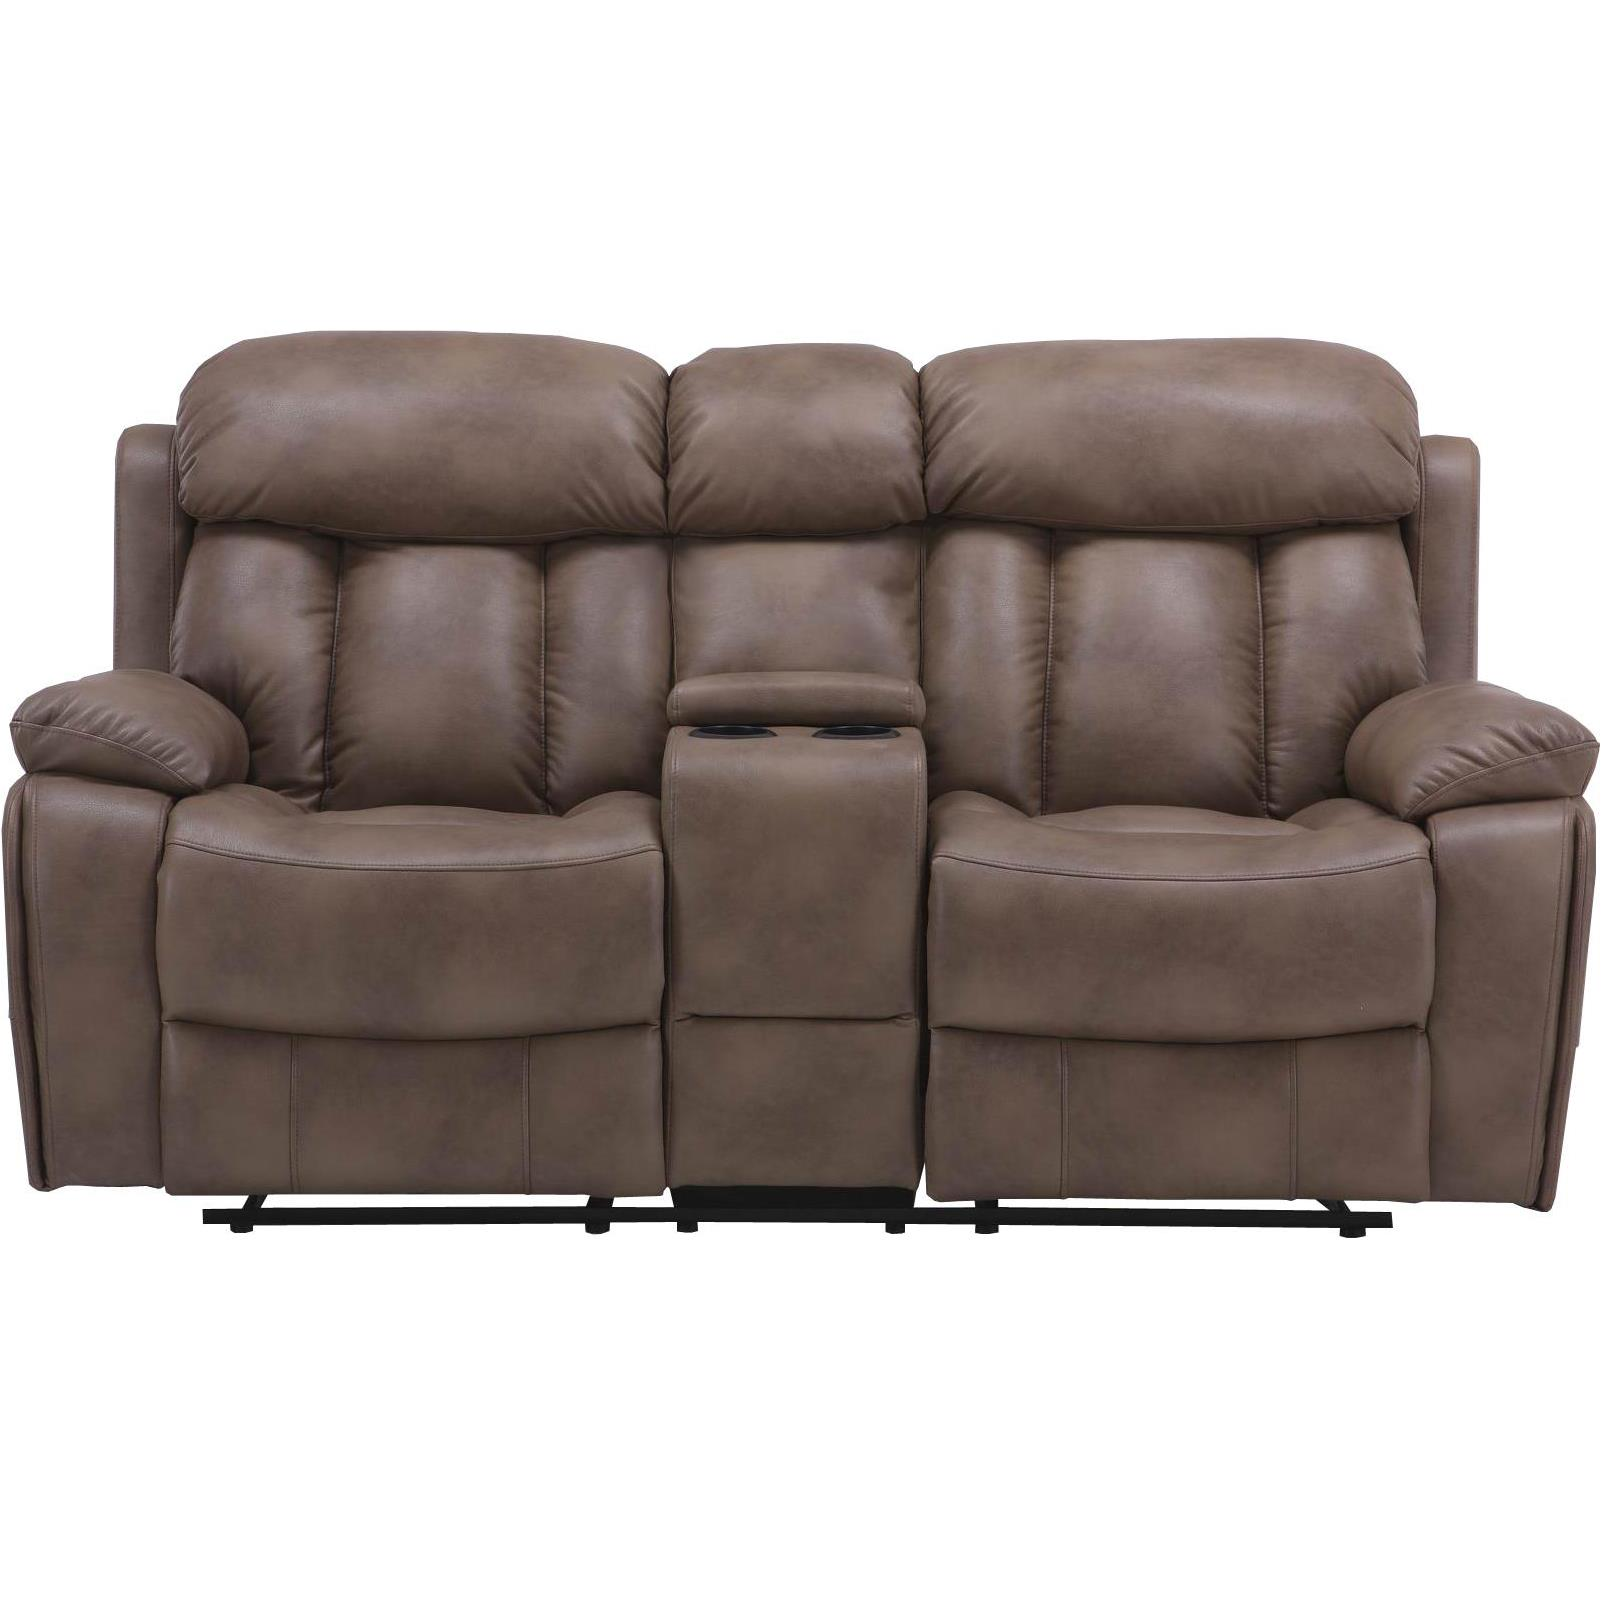 Parker Living Baron Casual Reclining Love Seat - Item Number: MBAR-822C-BA